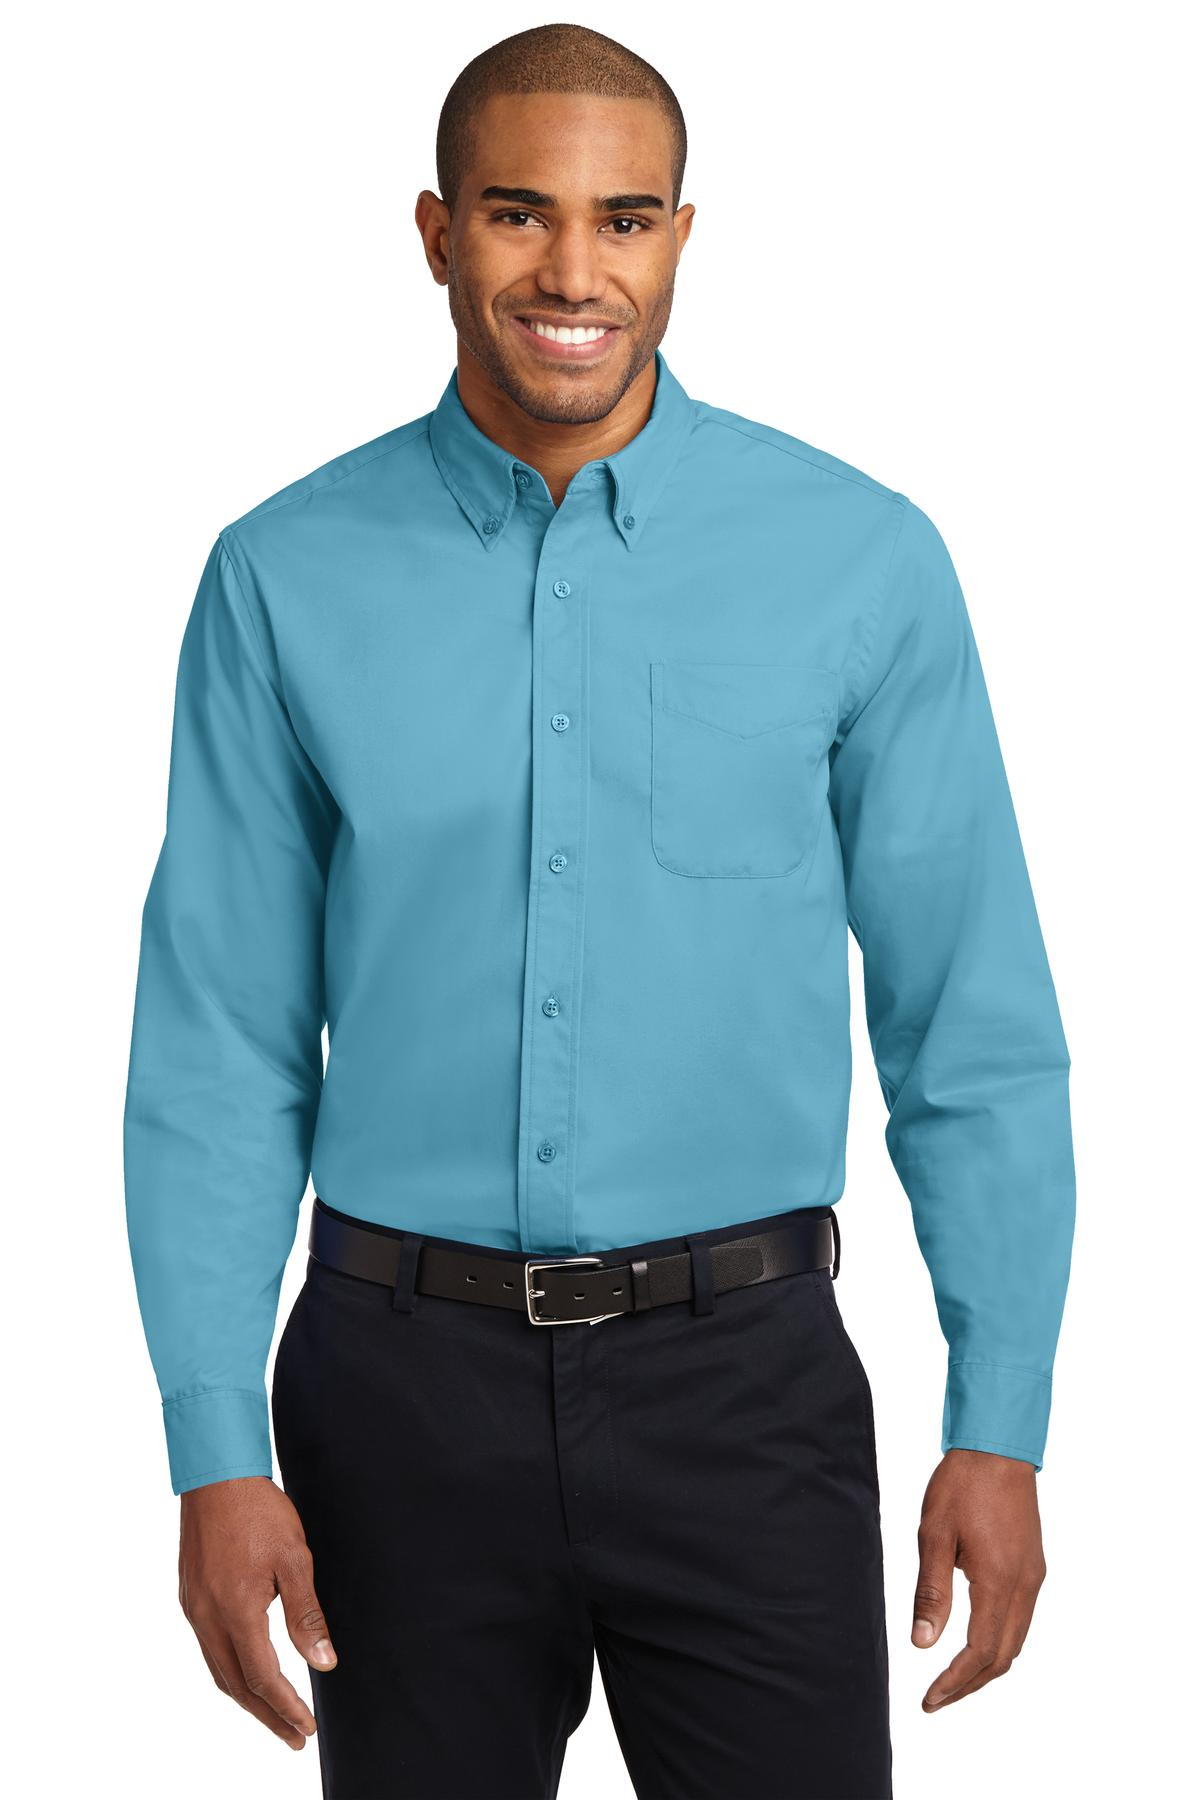 Black Port Authority Tall Silk Touch Polo.